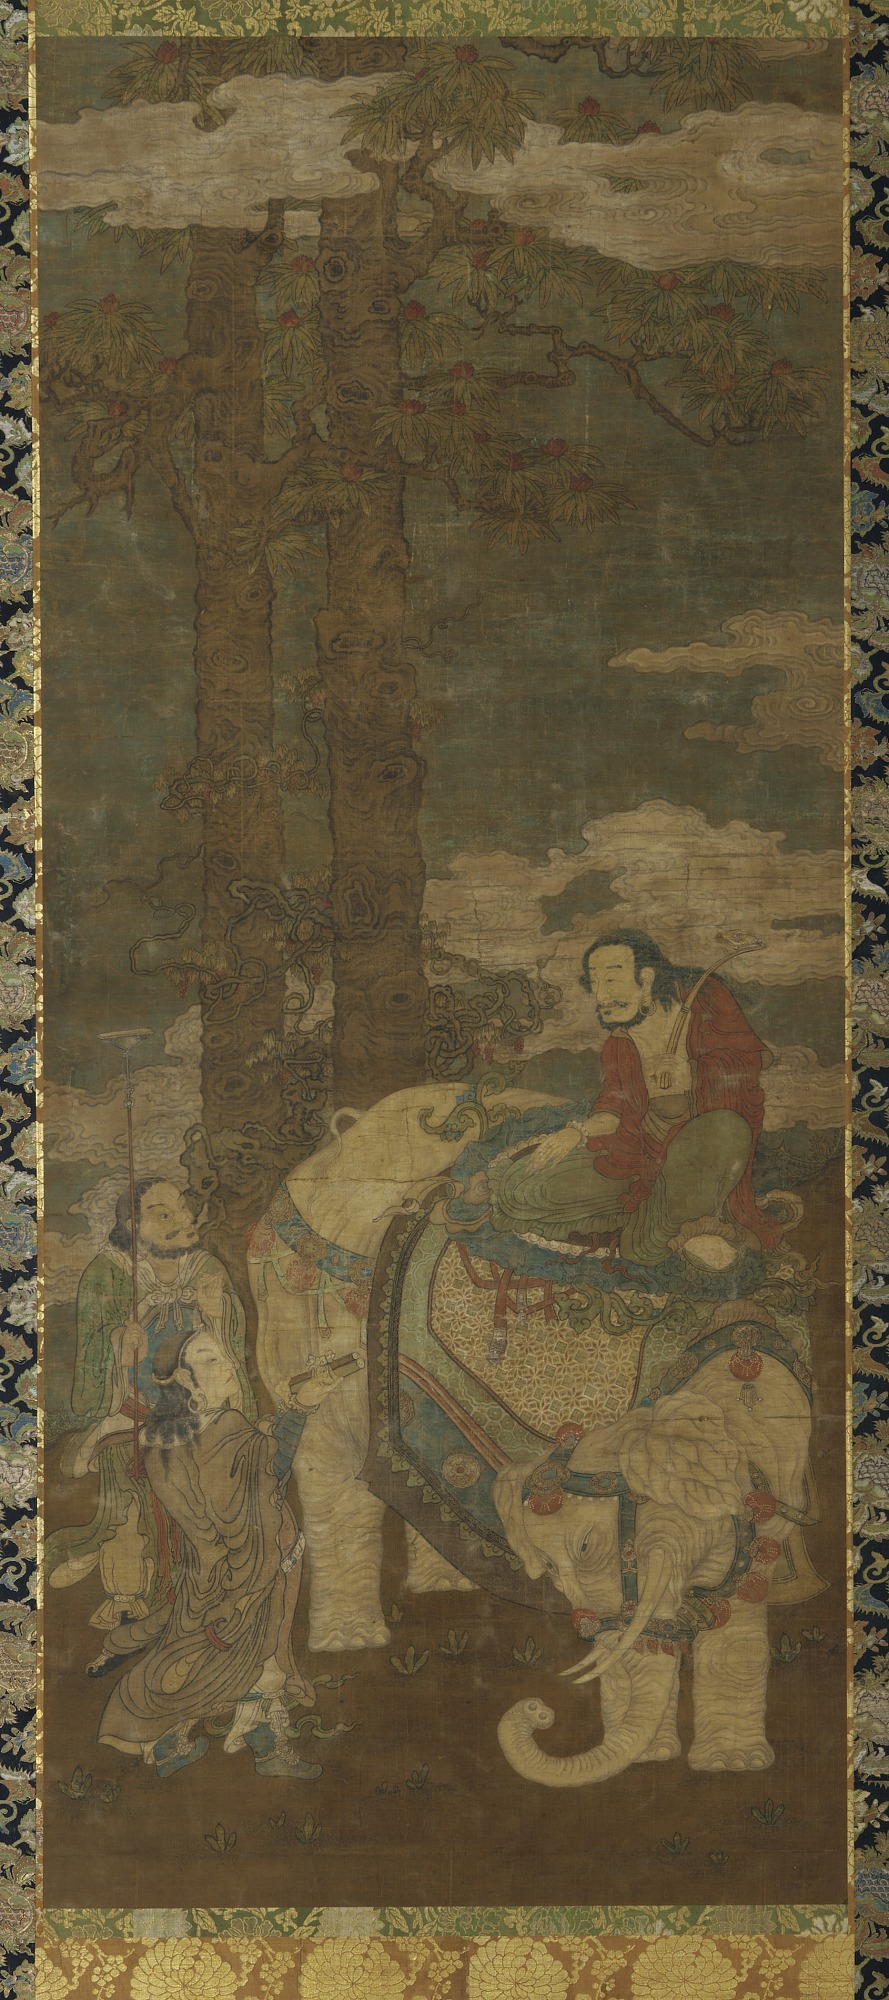 : Sakyamuni on an Elephant